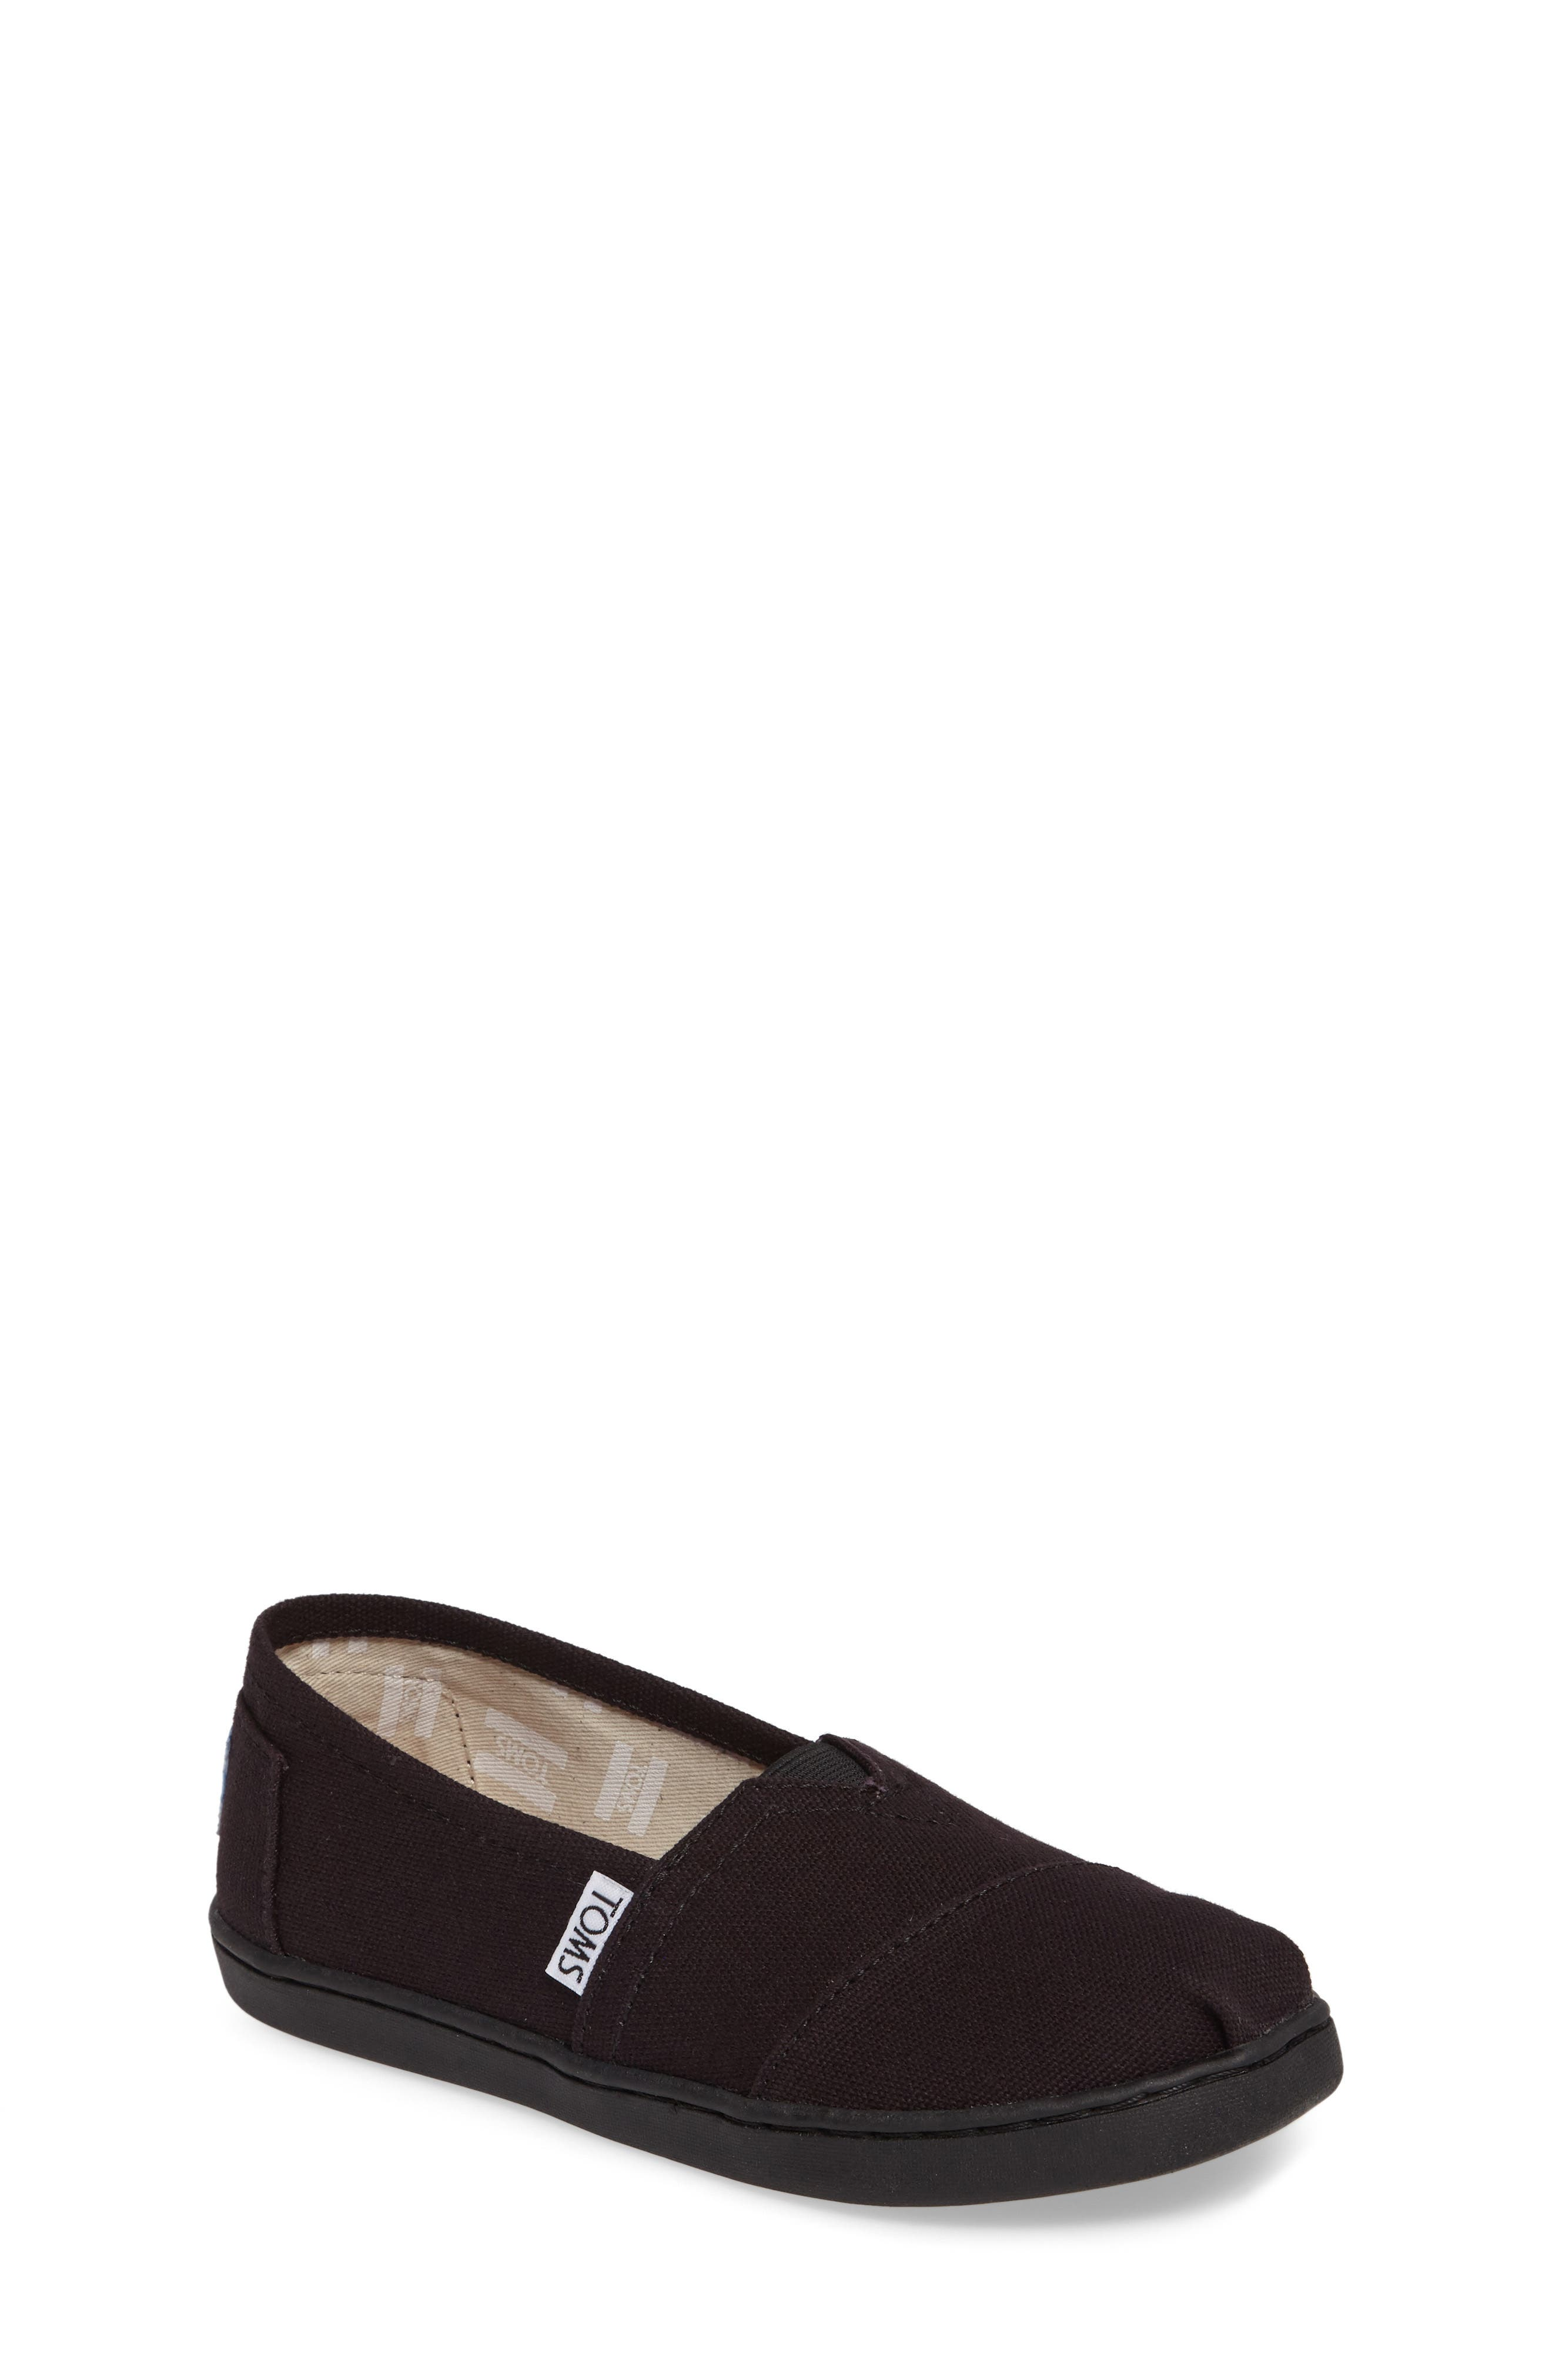 TOMS, 2.0 Classic Alpargata Slip-On, Main thumbnail 1, color, BLACK CANVAS